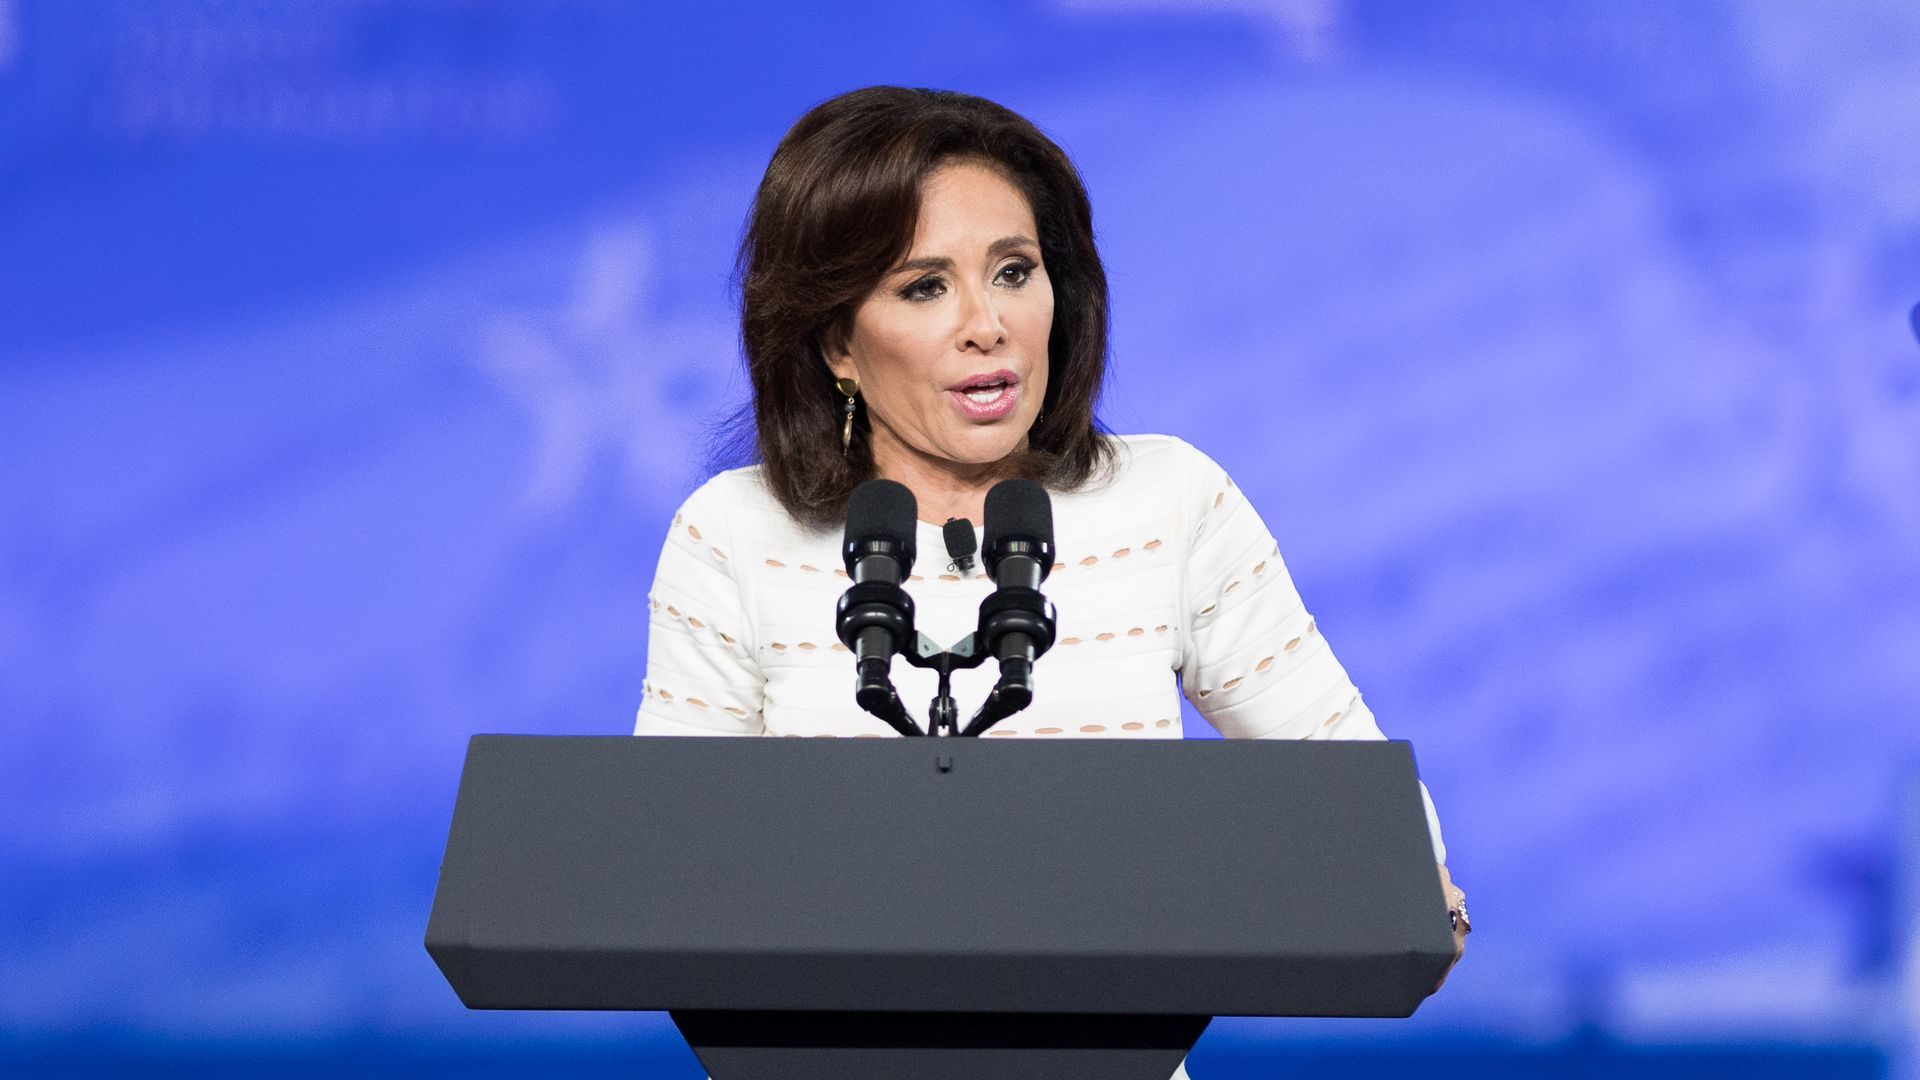 Jeanine Pirro did not address being off air during her return to her Fox News show.